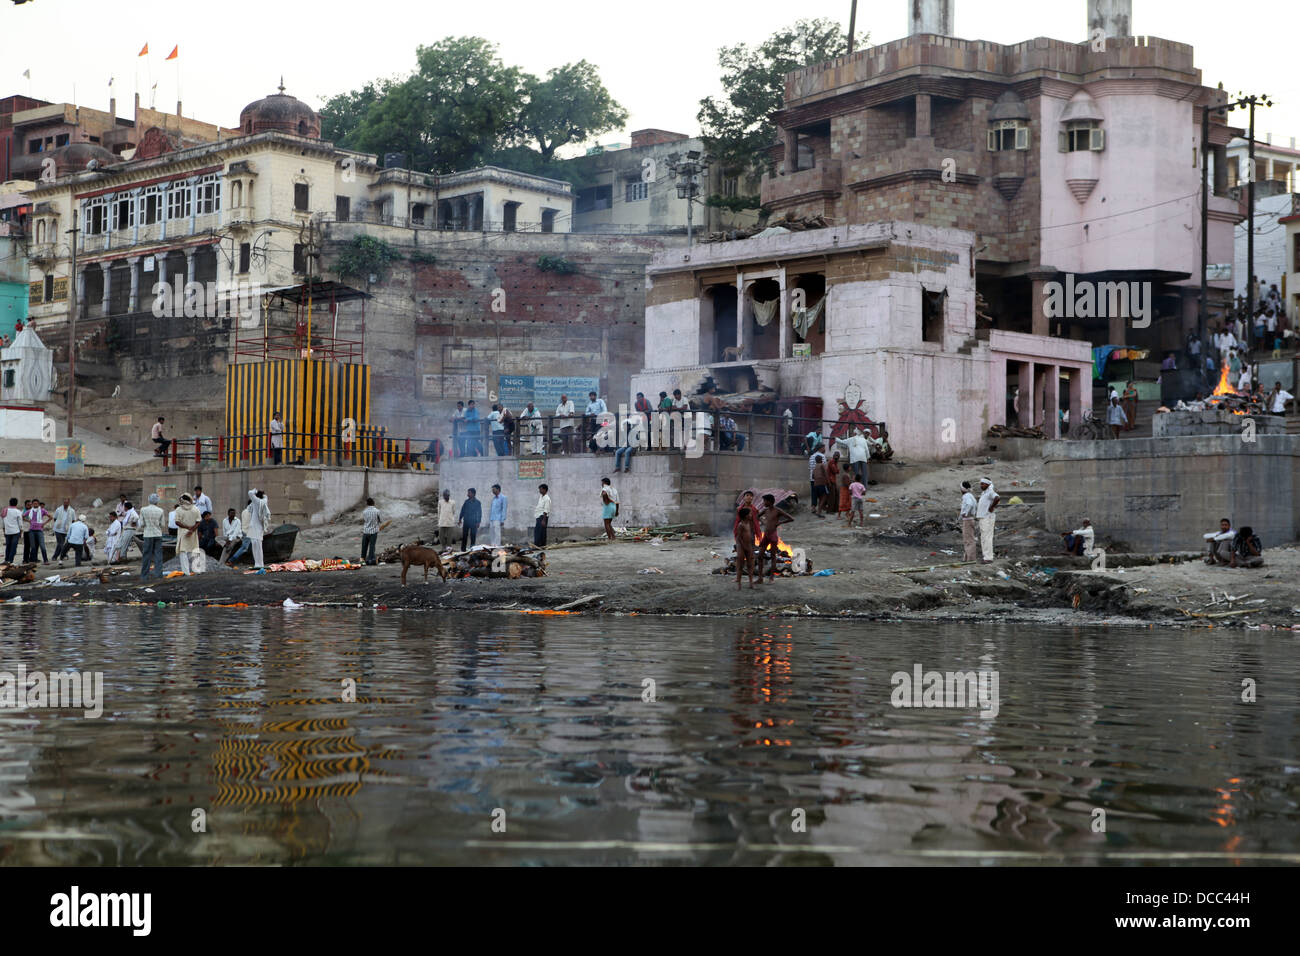 Mourners gather at the burning ghats on the banks of the RIver Ganges, Varanasi. - Stock Image